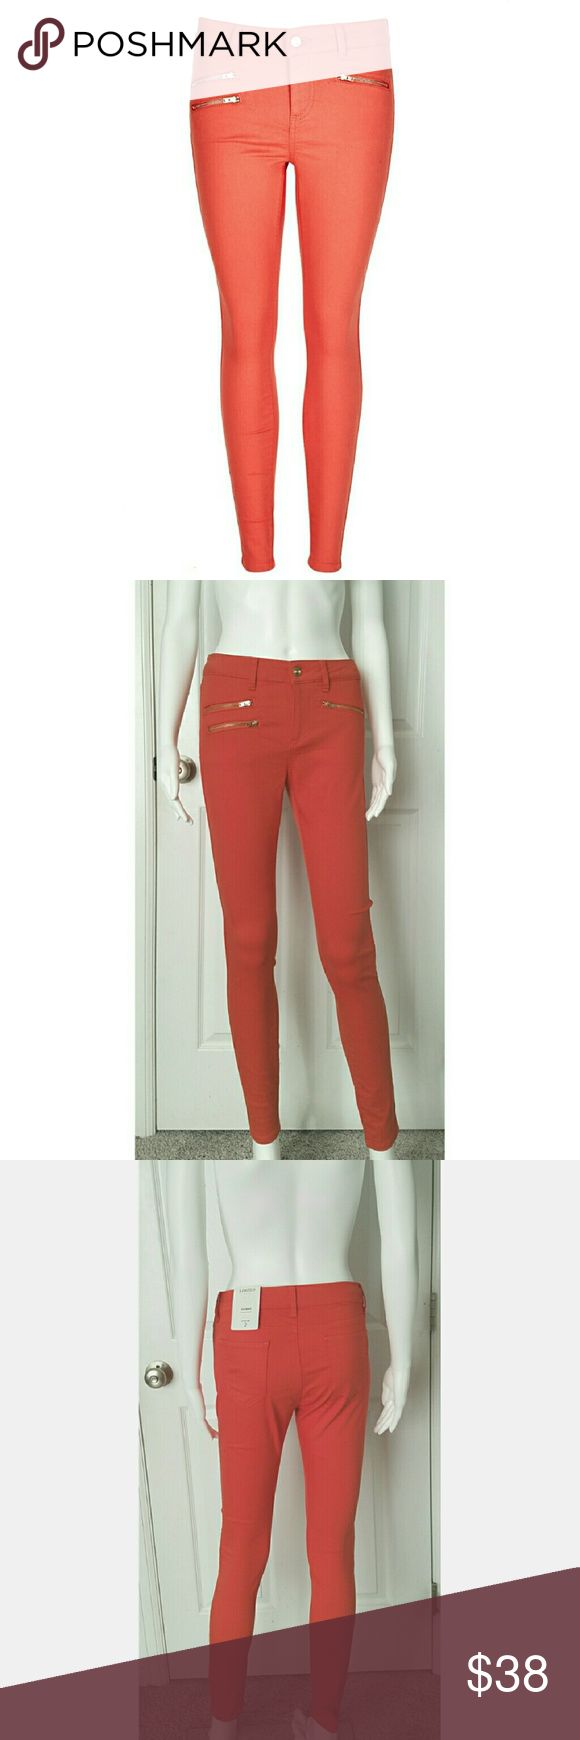 "Deep coral zippered skinny ankle jean Deep coral (red orange) skinny jean (jegging) with rose gold toned zippers. Top pocket on both sides functioning, lower pocket on one side is decorative. Matching fly zipper & button. Have a slight washed look. Attention these are labeled UK (I imported them). The size you select for purchase will be the US converted sizes but when you receive the item it will have the UK size on the label (2 sizes up). Inseam is approx 29.25"" reg. NO TRADES Marks…"